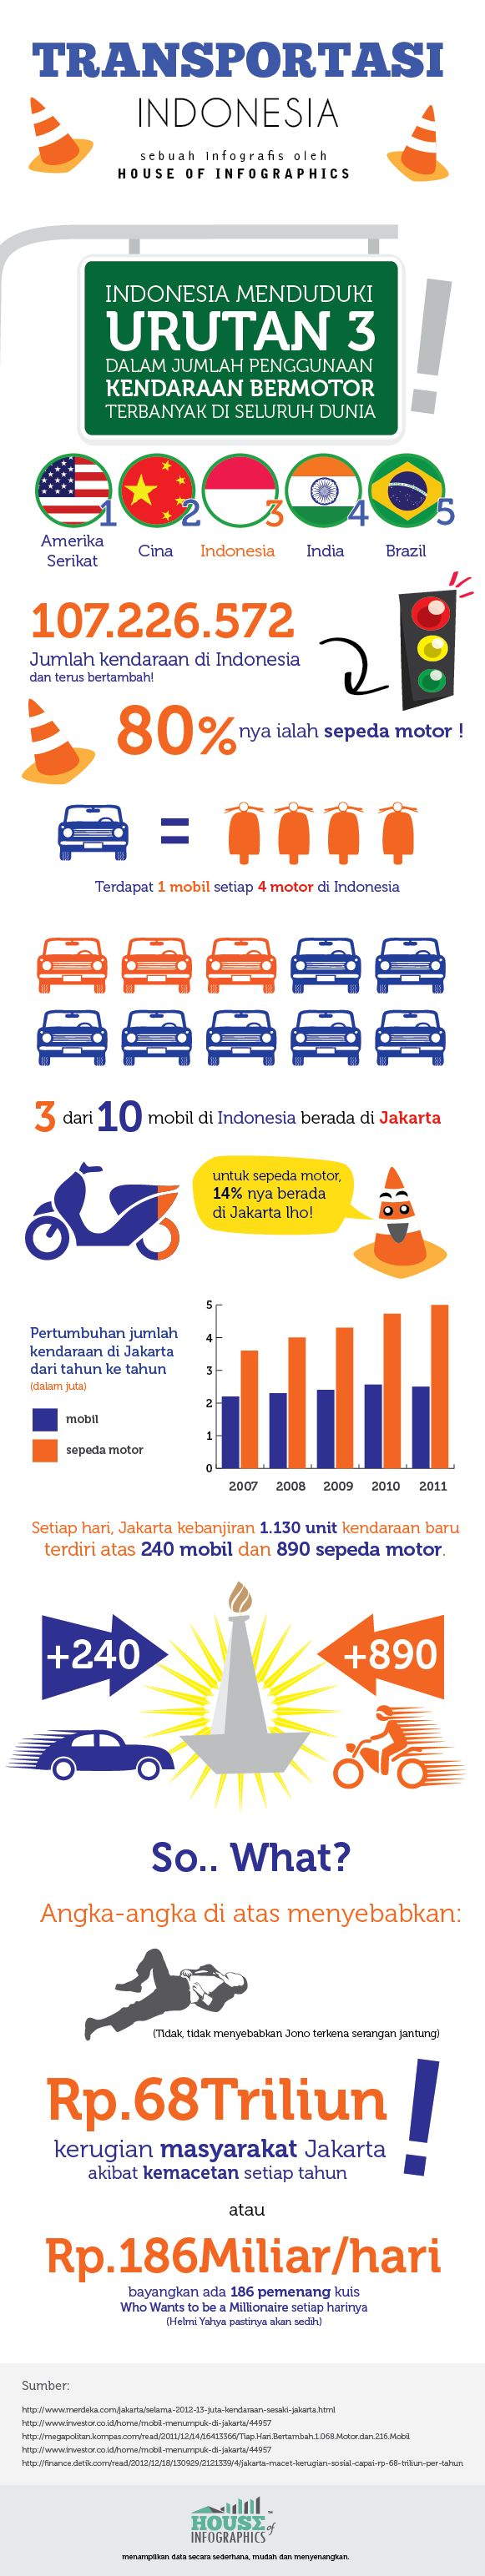 Infografis: Transportasi Indonesia - House of Infographics